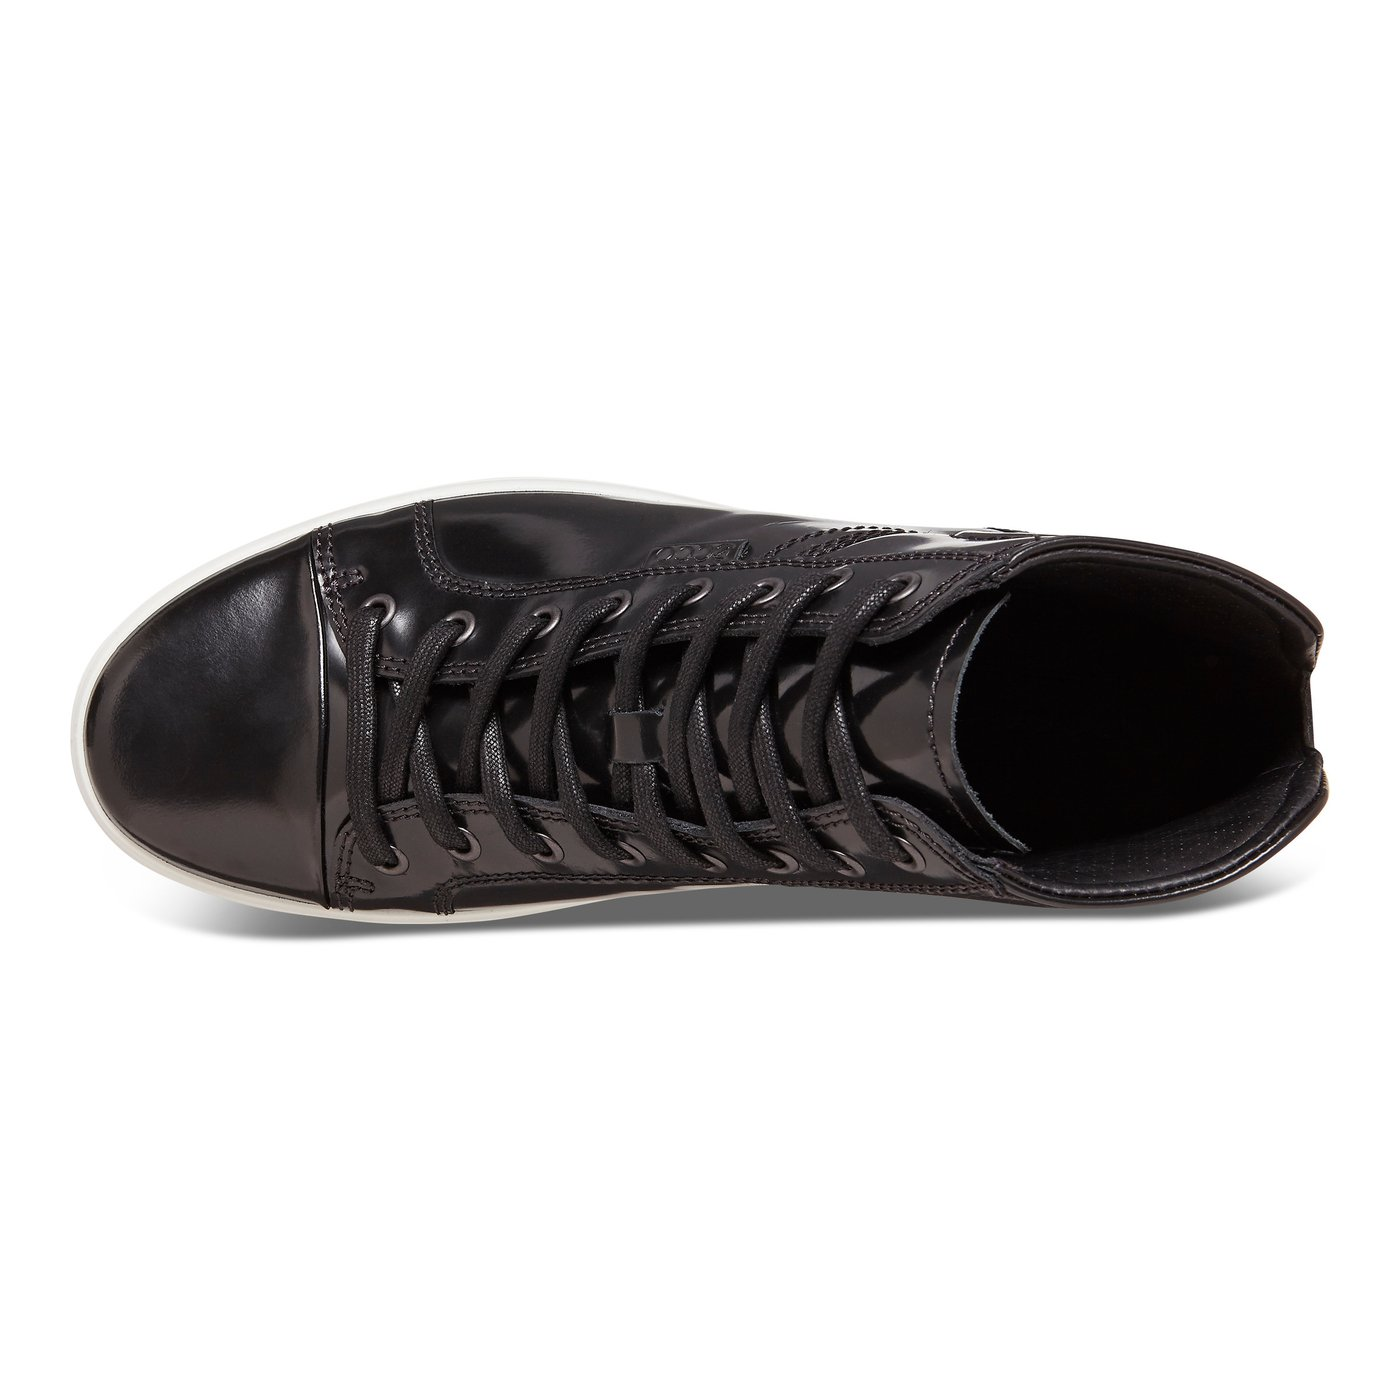 ECCO Mens Soft 7 Luxe High Top